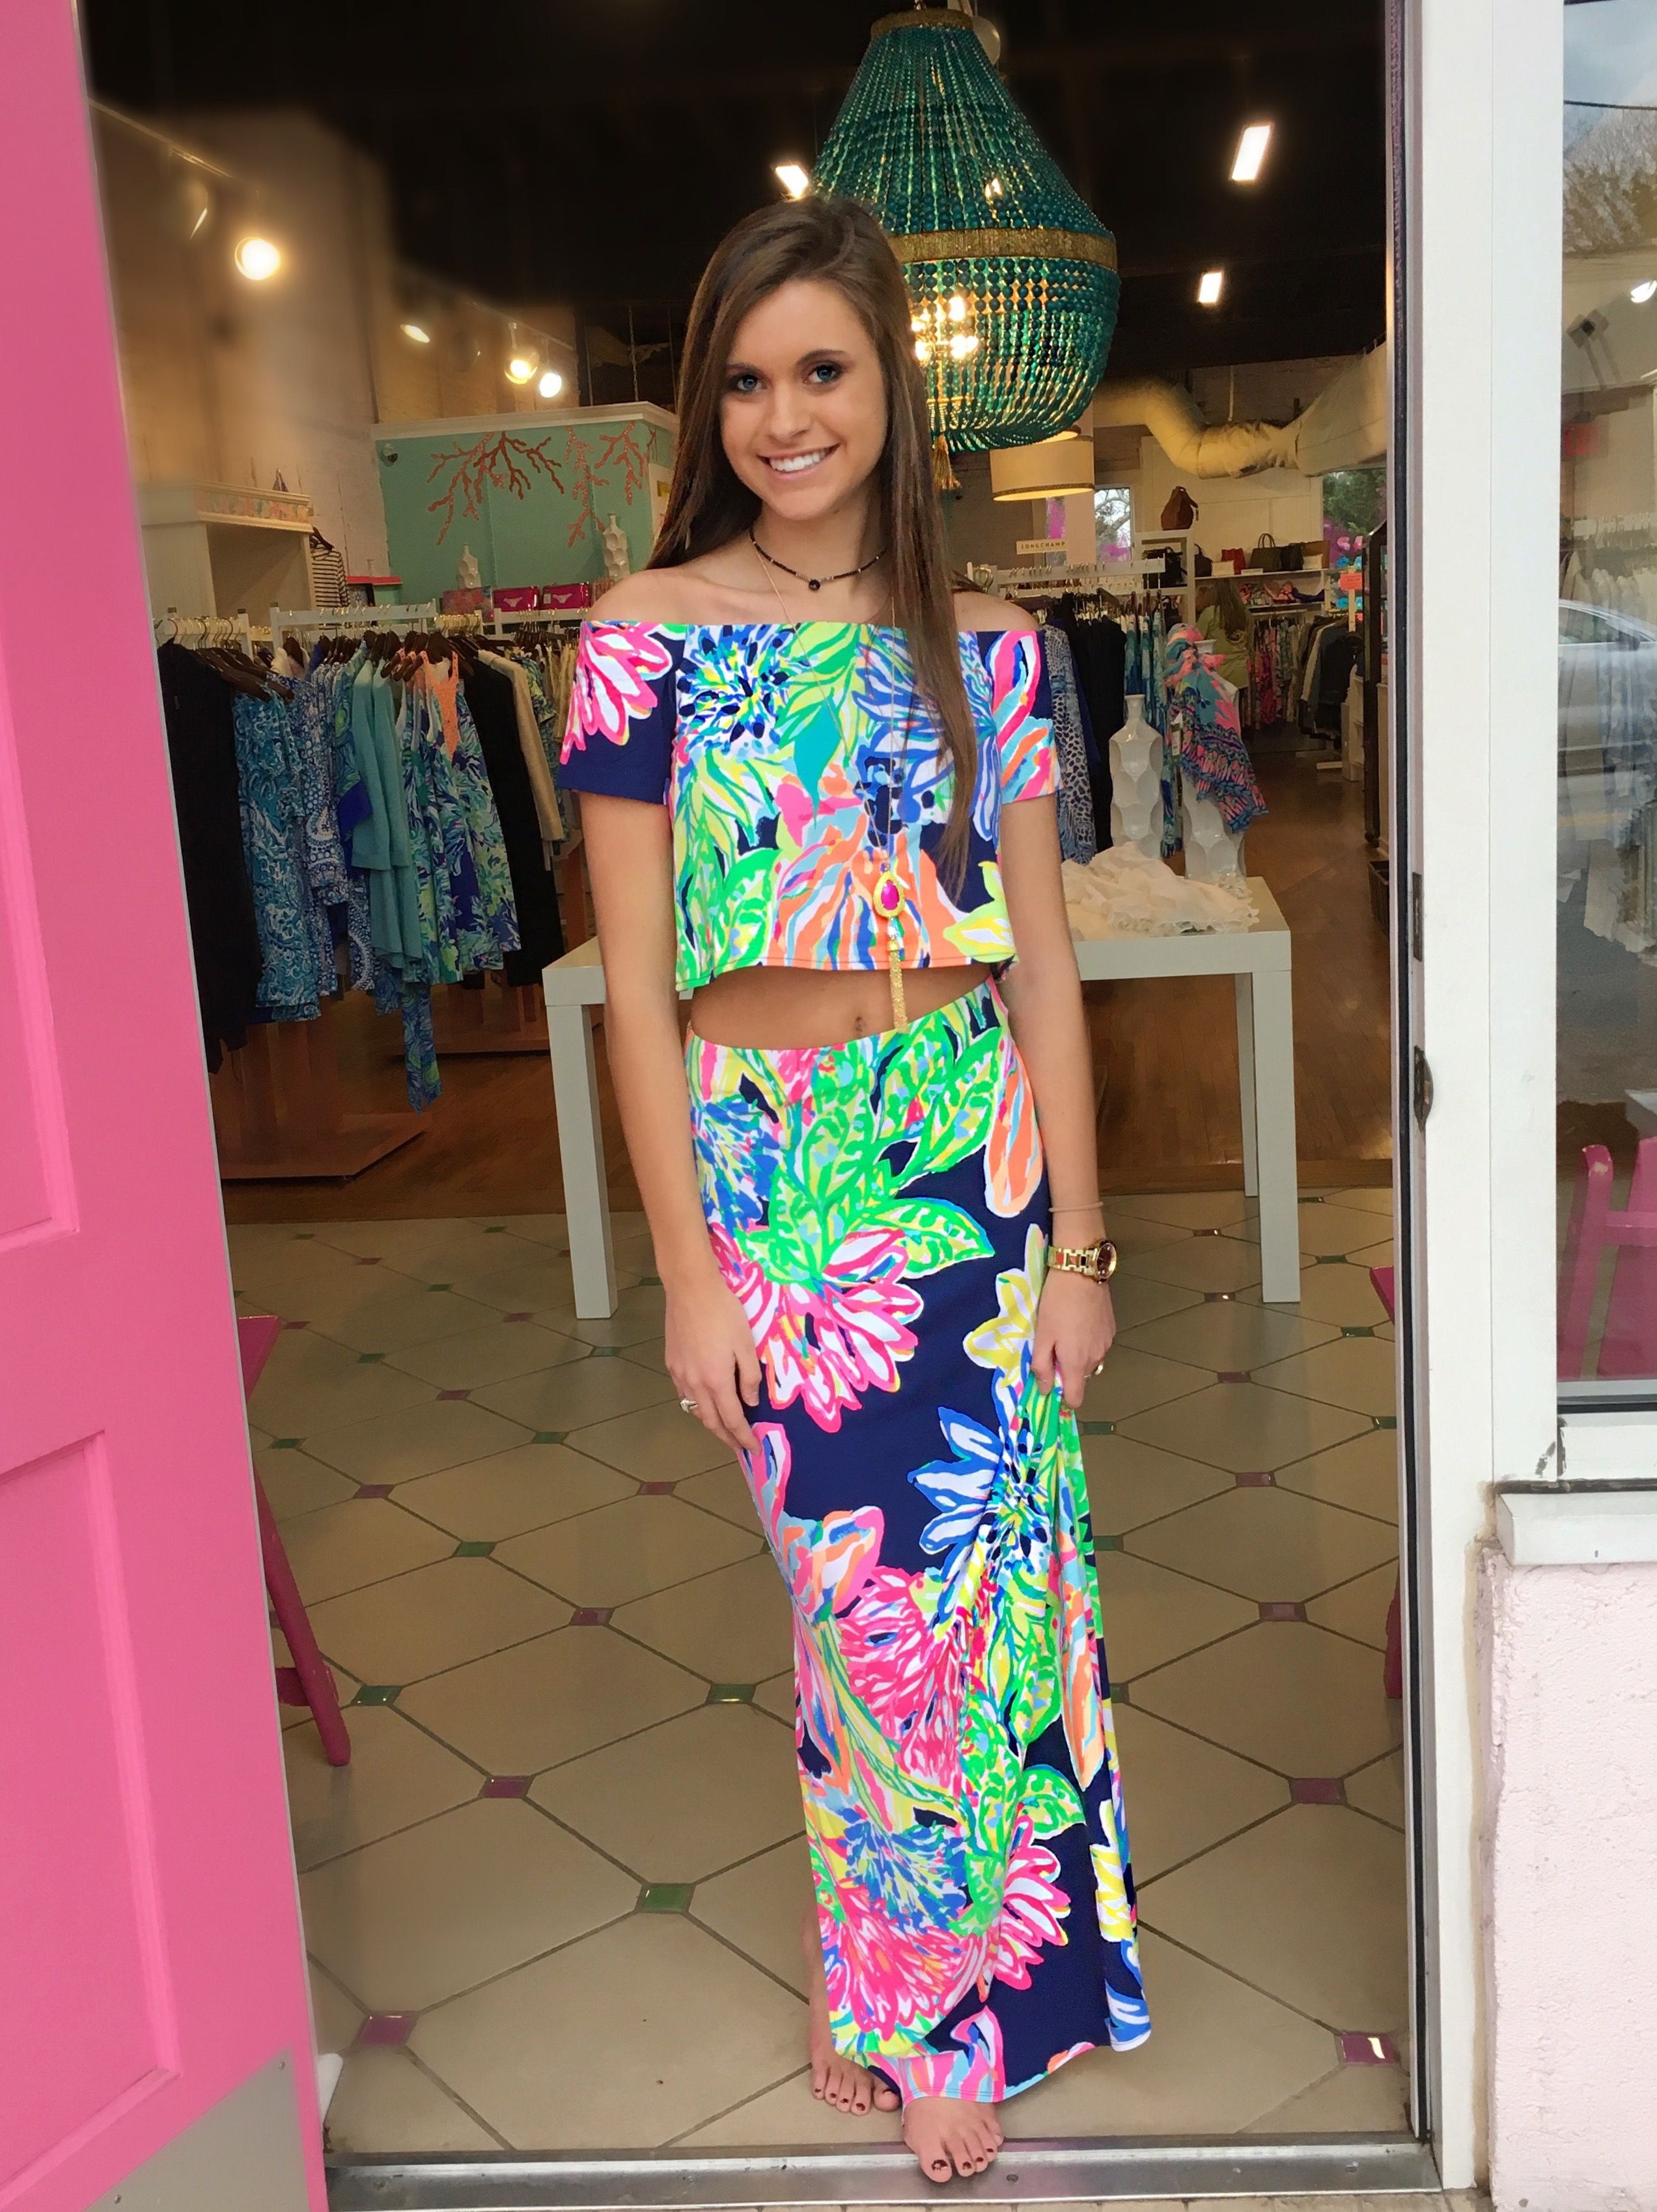 74cd0f7a23f021 Mansi Set Travlers Palm Pink Bee, The place to shop for Lilly Pulitzer  Dresses, Sets, Tops, Pants, Shorts, accessories and shoes!